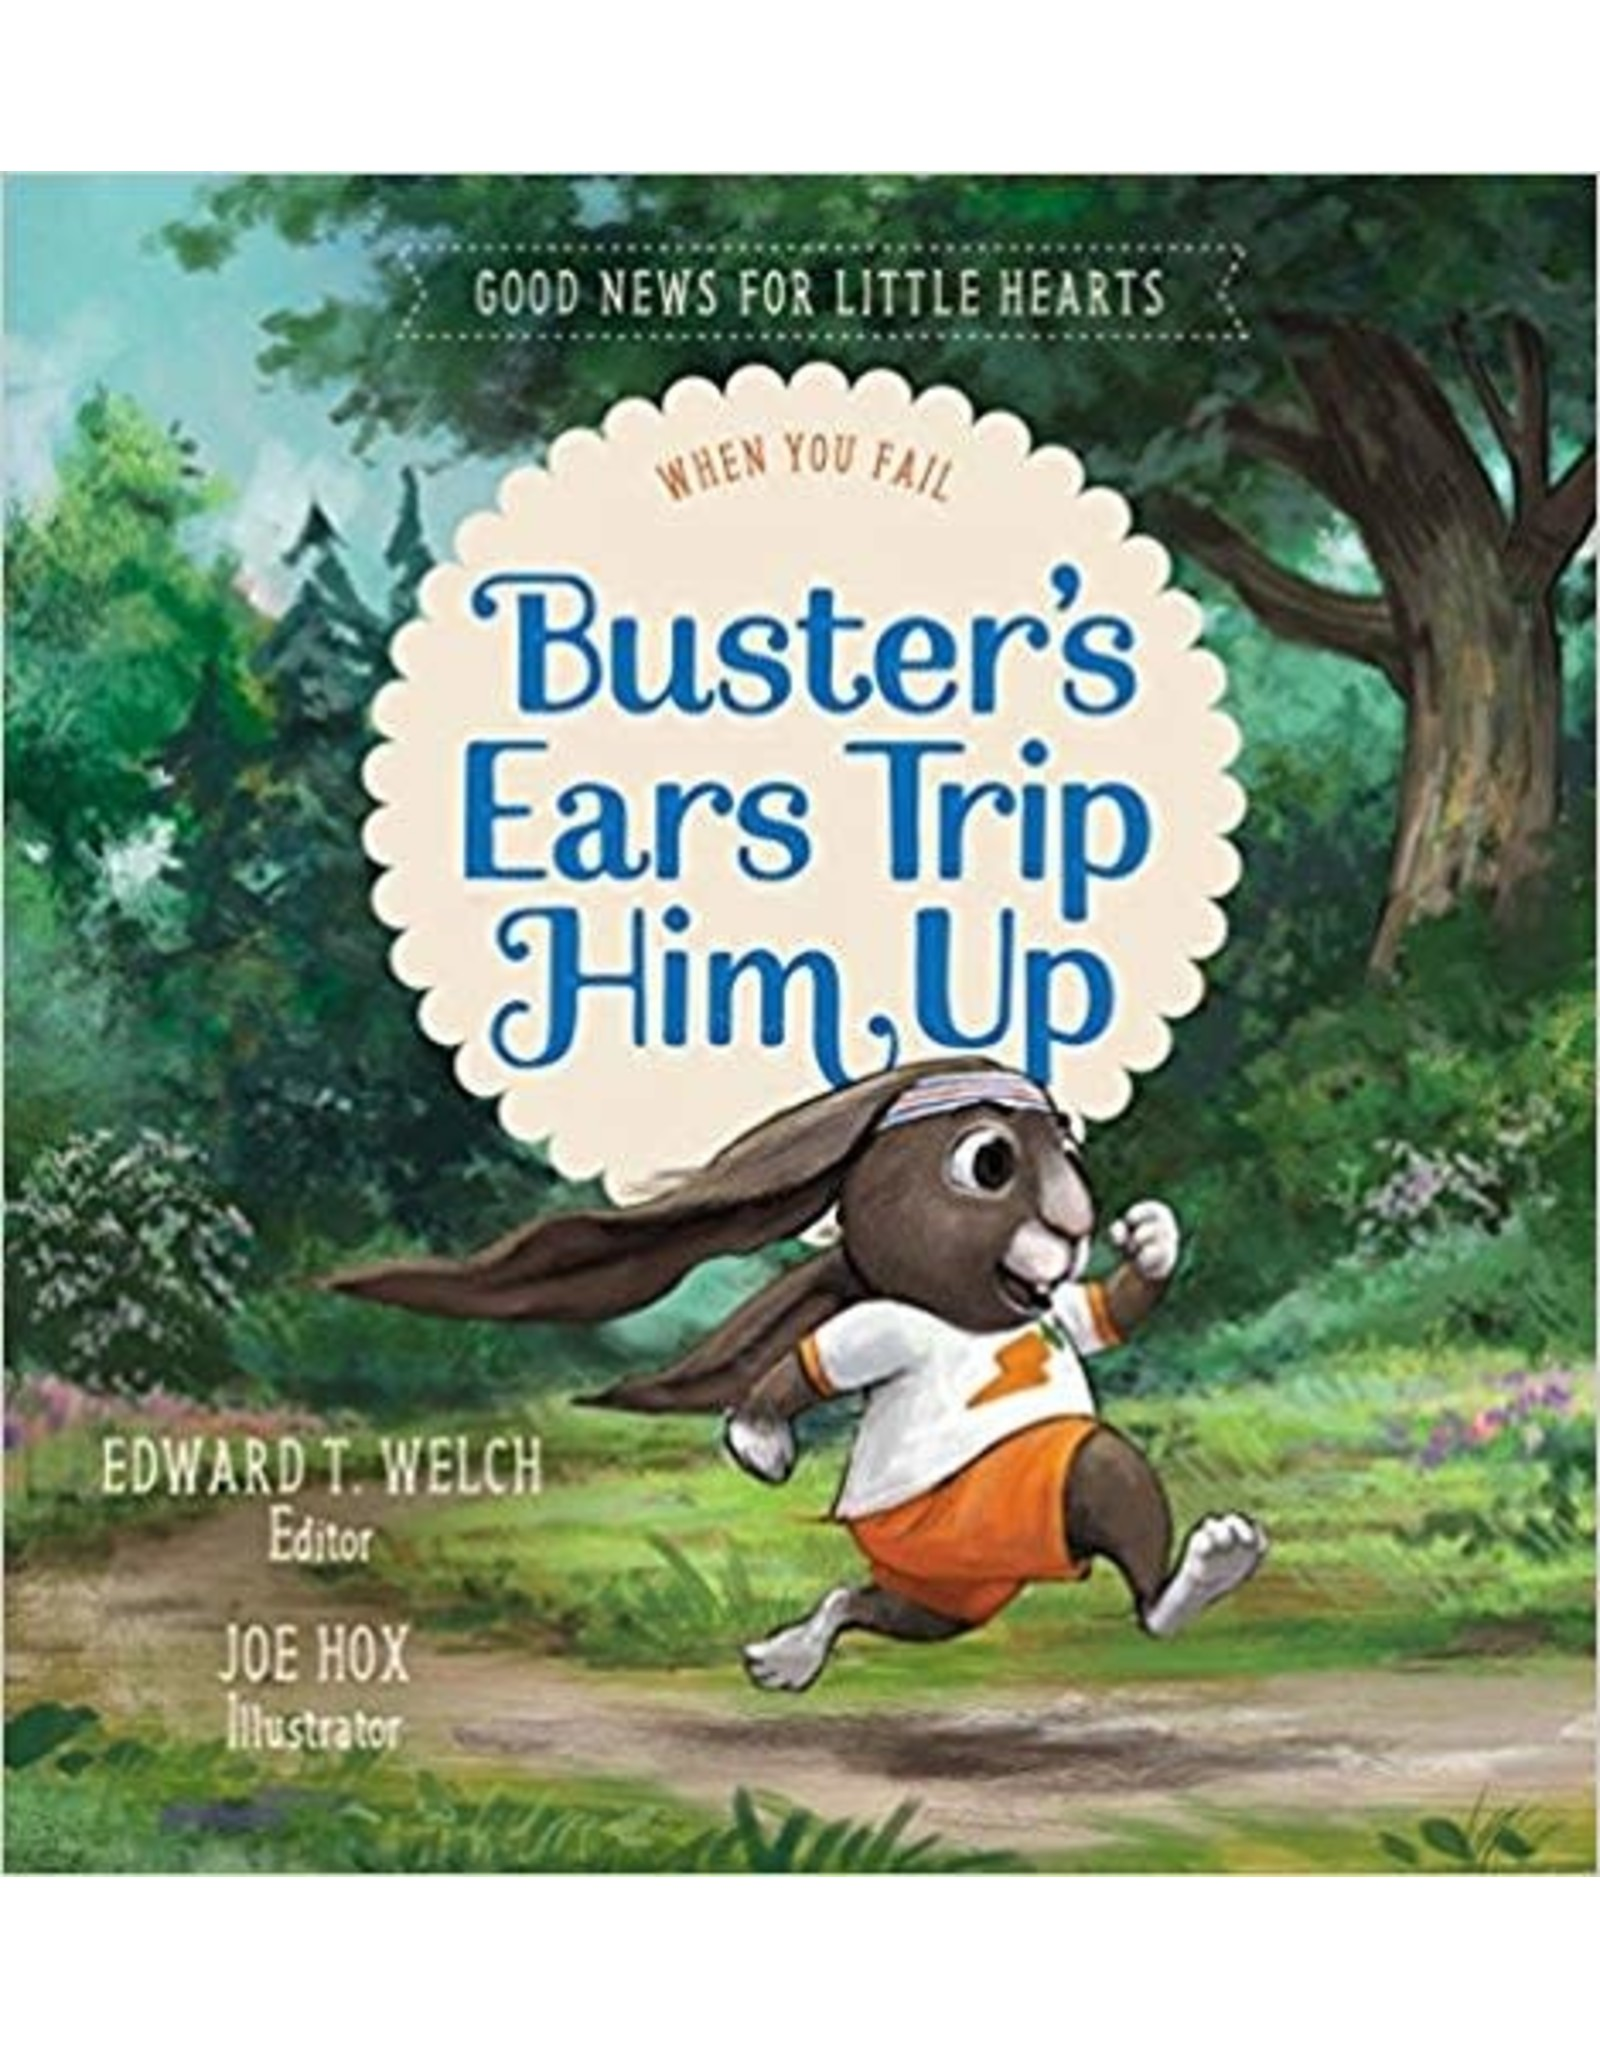 Welch Busters Ears Trip Him UpWhen you Fail(Good News for Little Hearts)